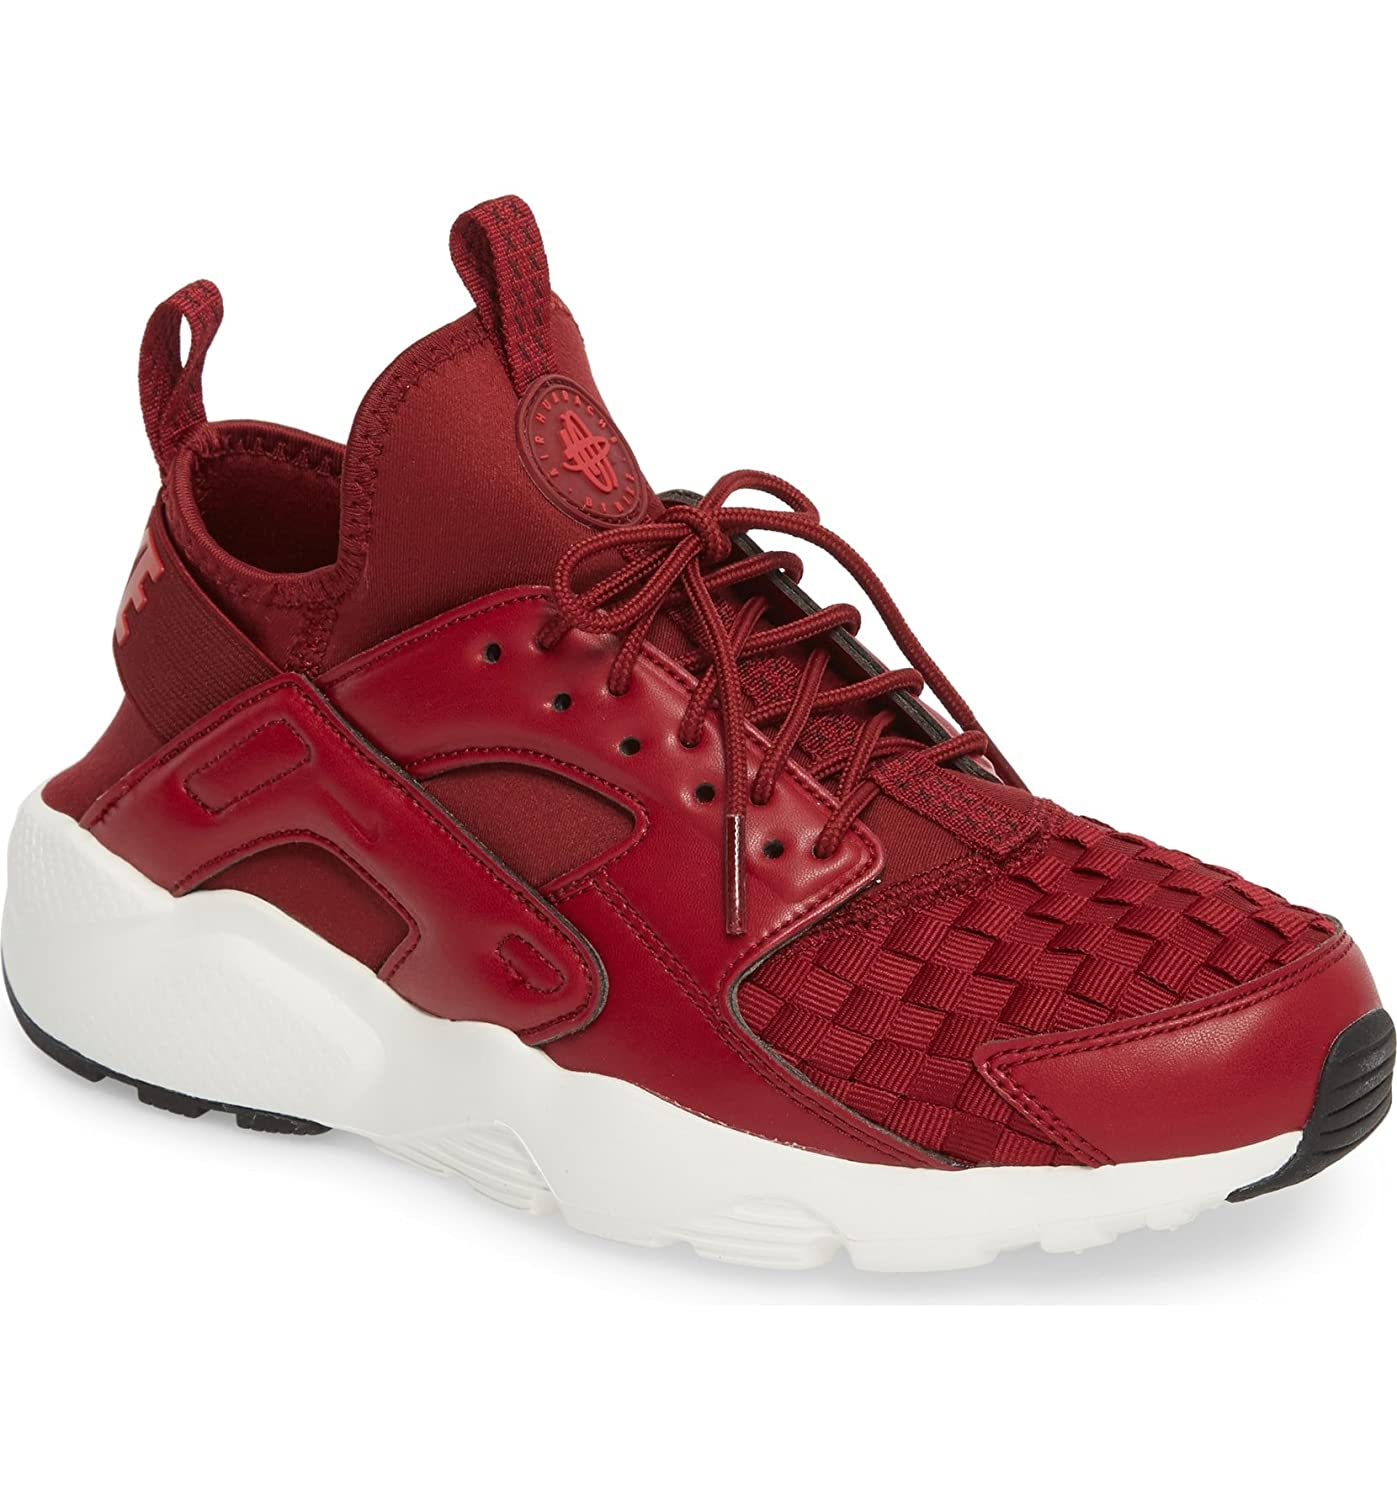 [ナイキ] メンズ スニーカー Nike Air Huarache Run Ultra SE Sneaker ([並行輸入品] B07DTQW92C